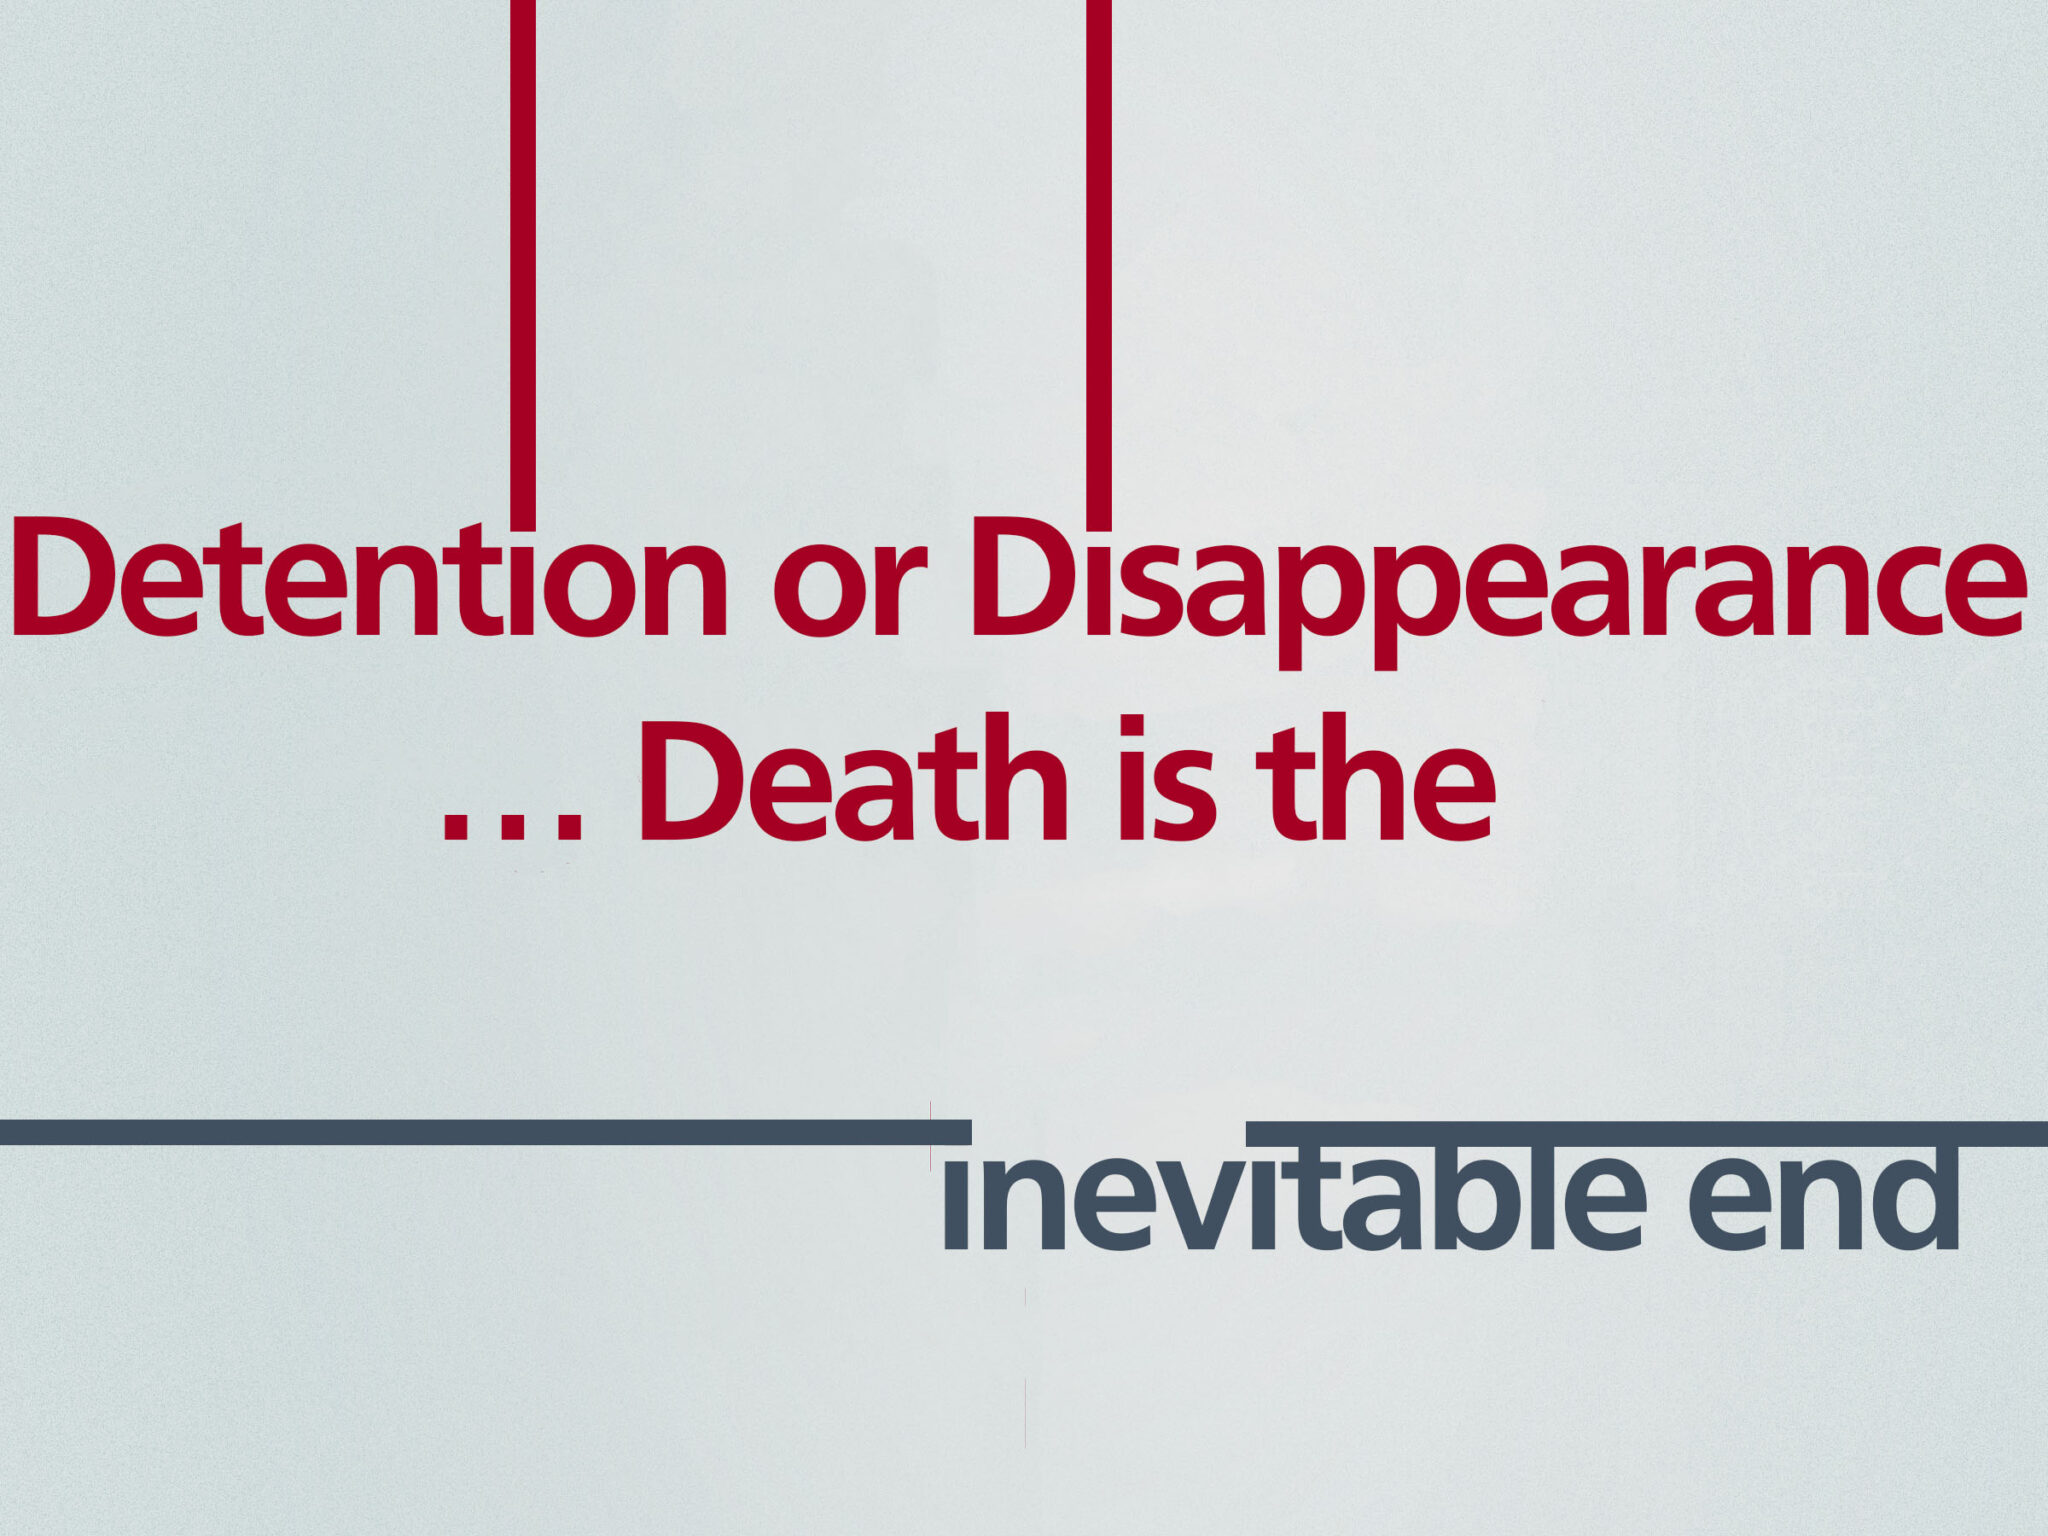 Syria    Detention or Disappearance… Death is the inevitable end.